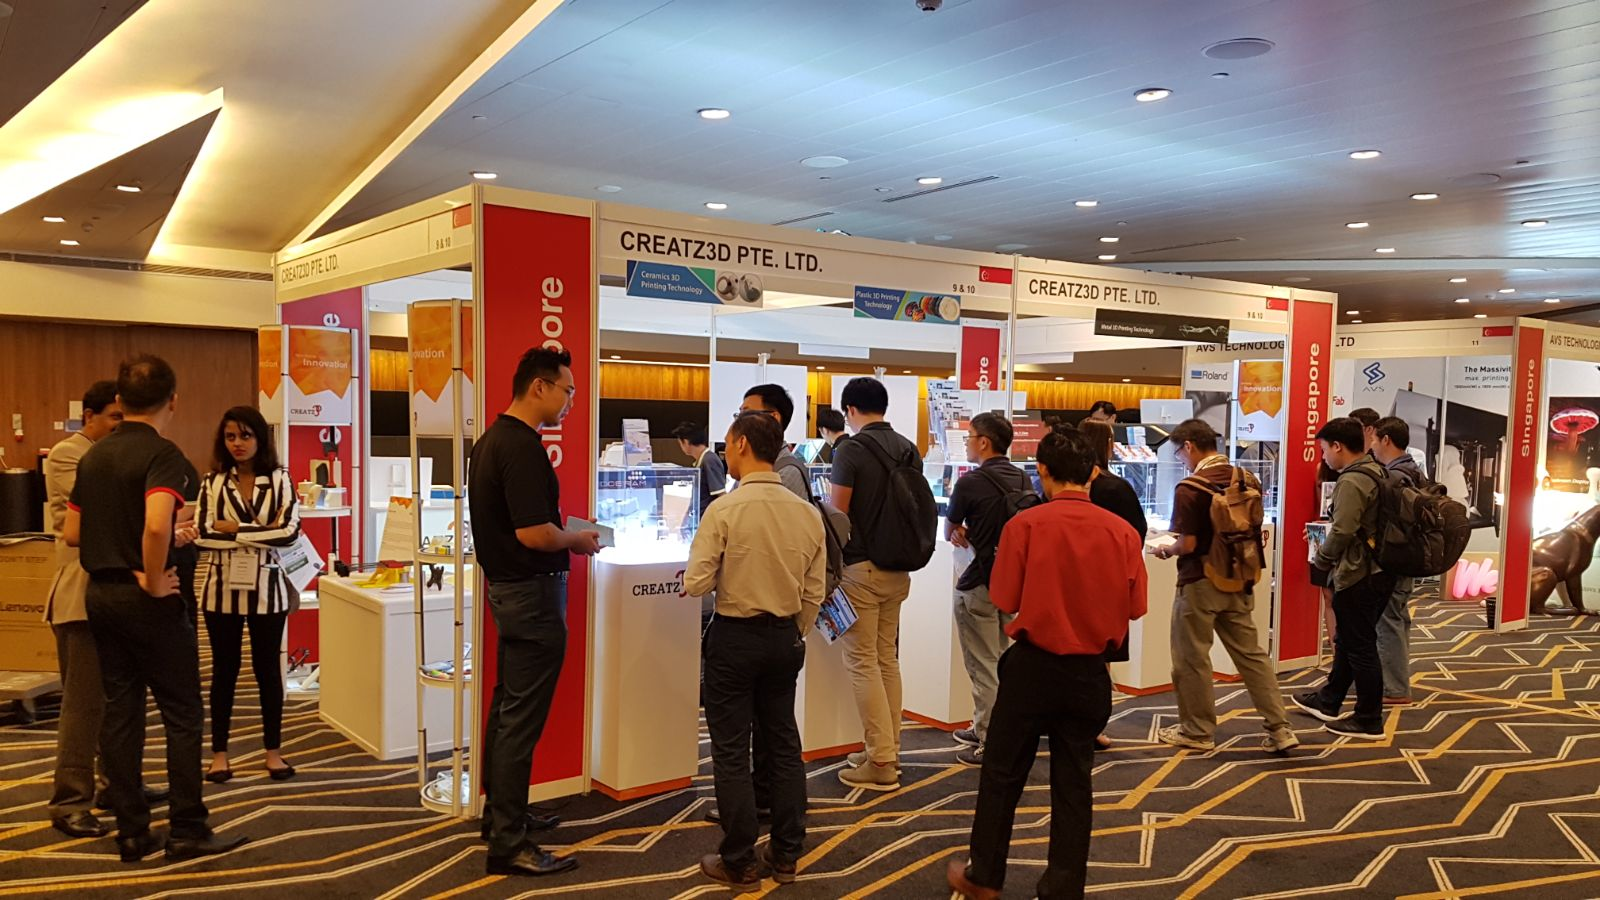 D Printing Exhibition Singapore : Inside d printing conference expo singapore creatz